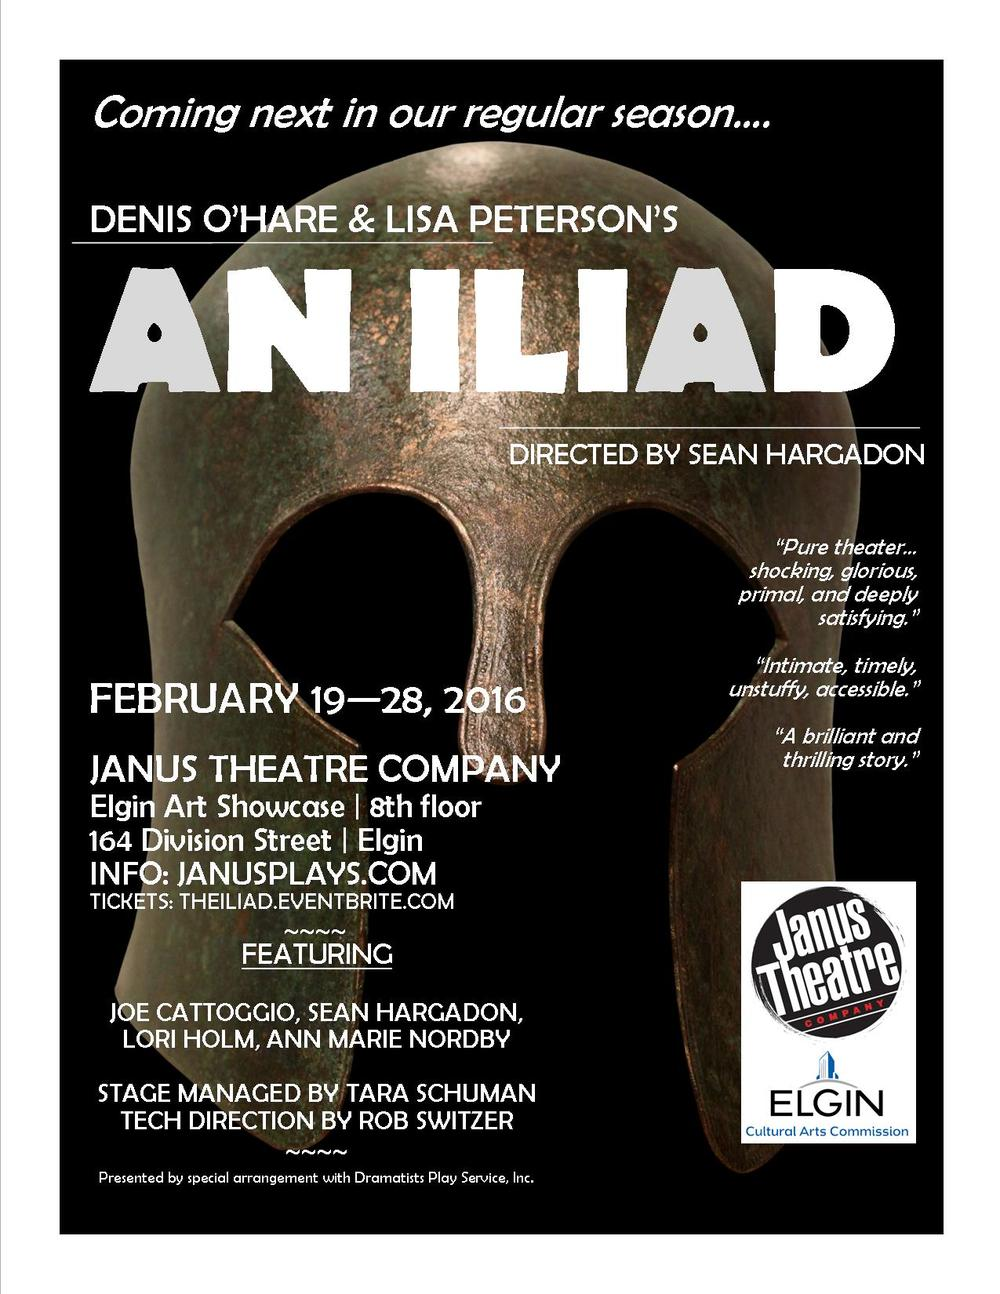 An Iliad poster designed by Janus Theatre Company